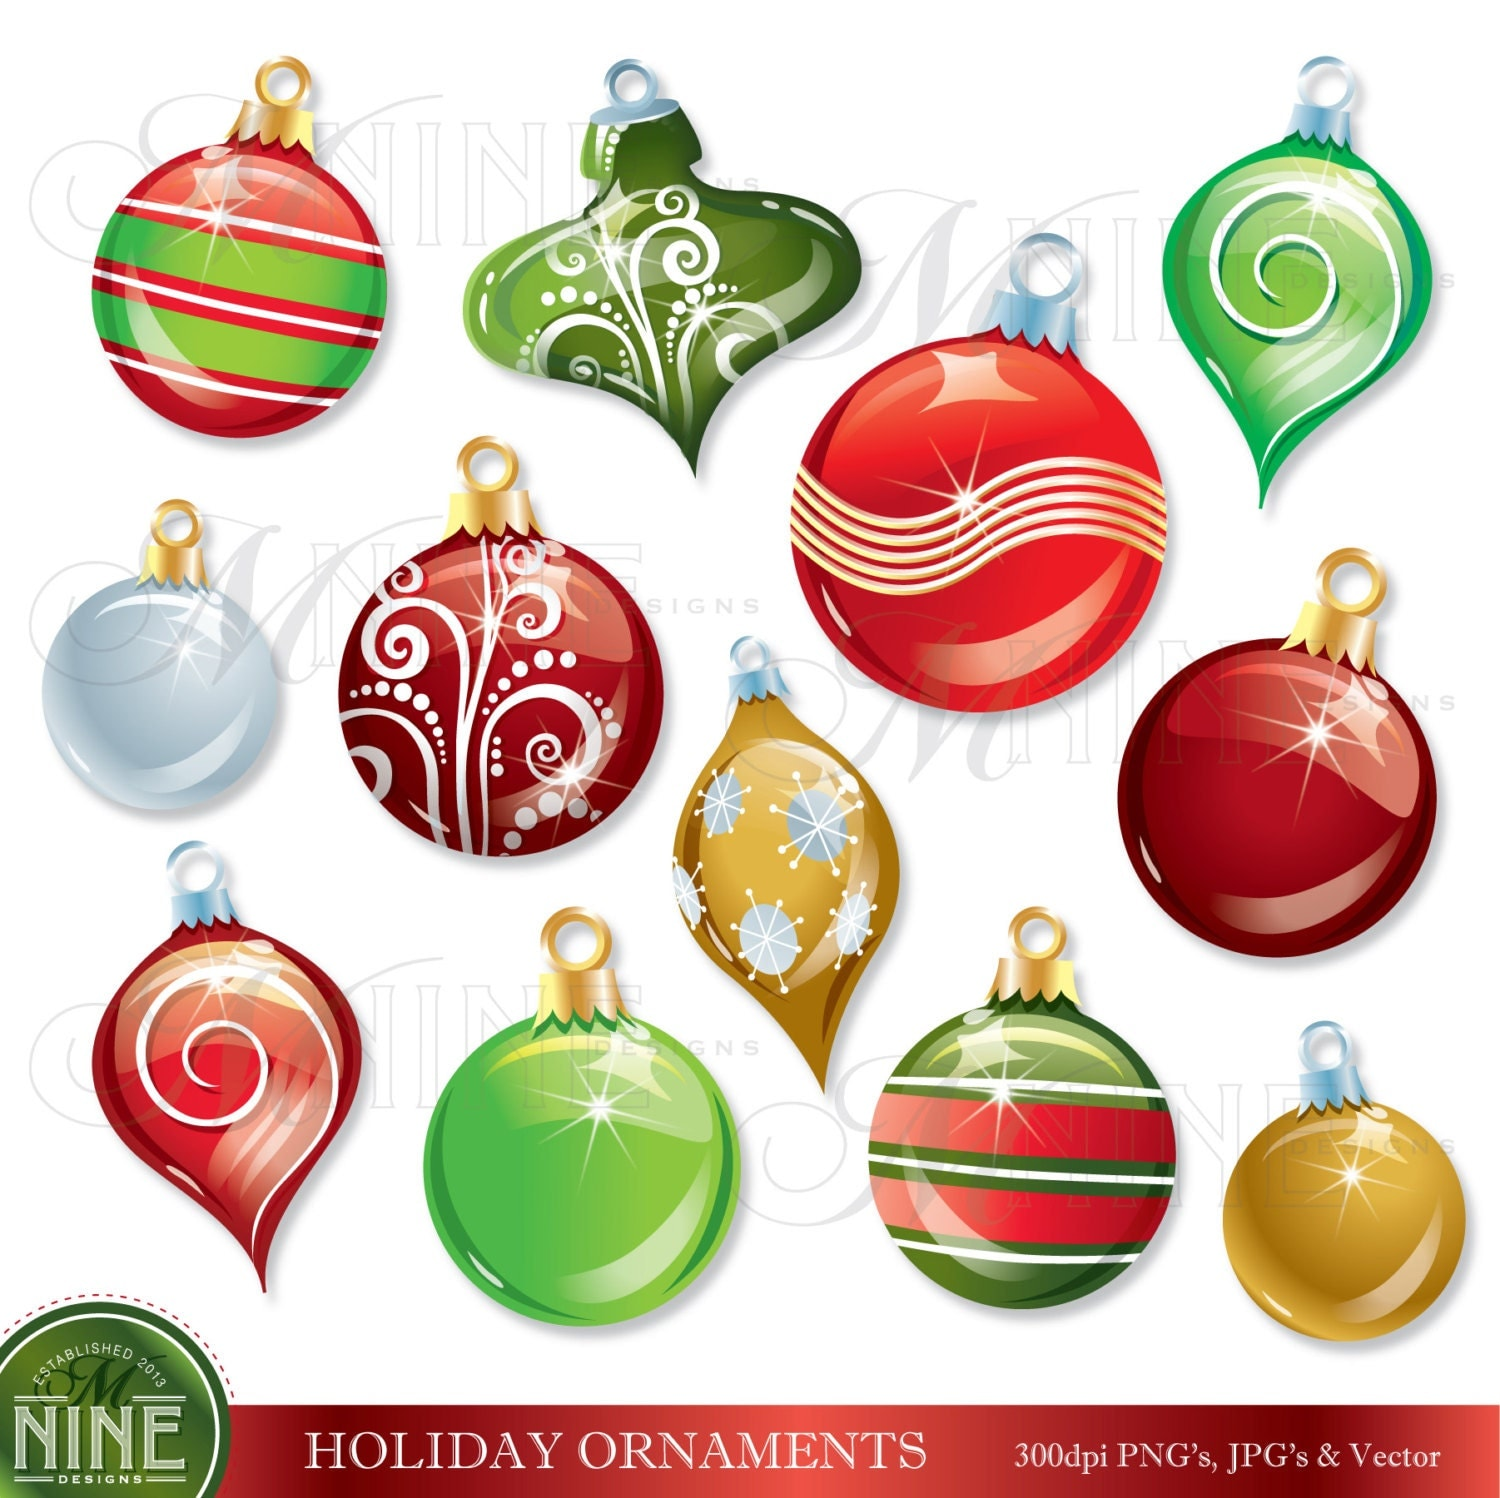 Christmas decorations clipart for Art for decoration and ornamentation